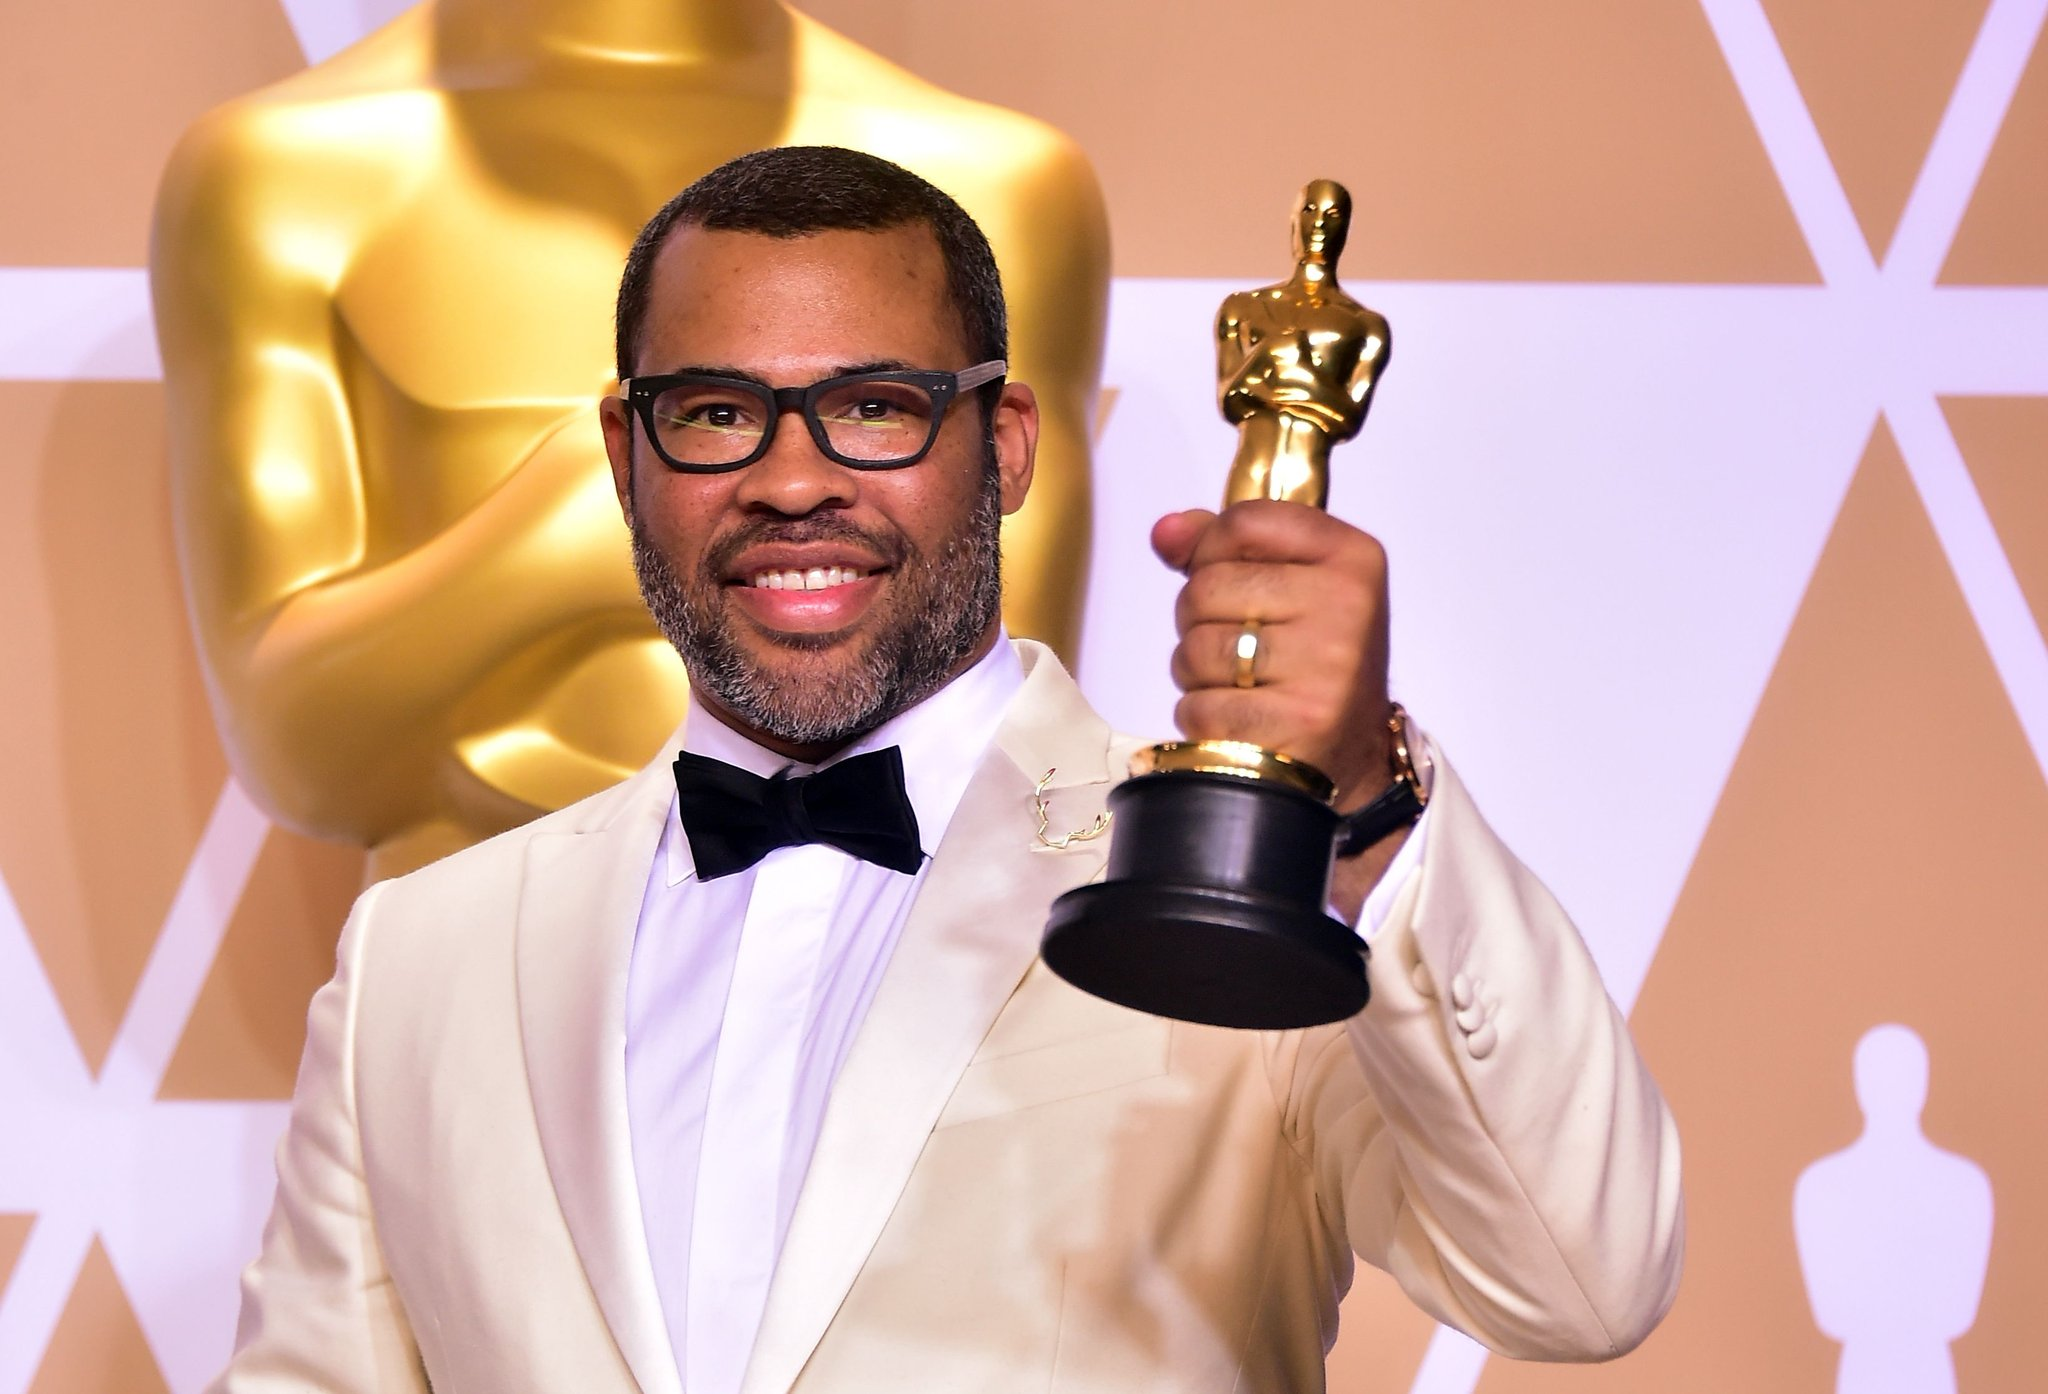 Jordan Peele's Upcoming Thriller, 'Us' to Star Lupita Nyong'o